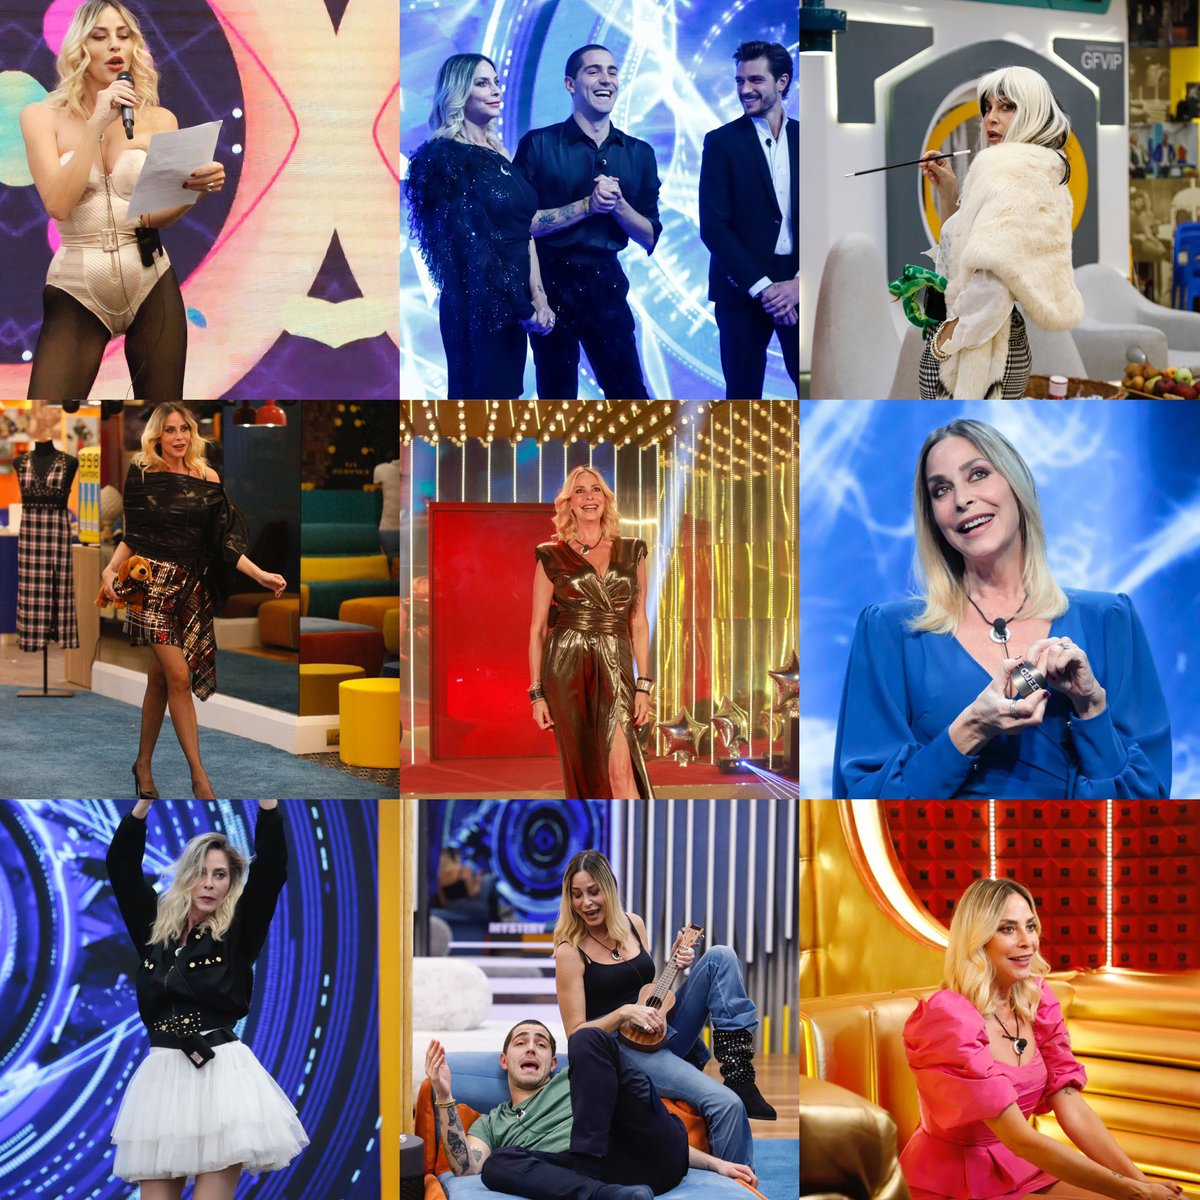 Replying to @GrandeFratello: Grazie Stefy 🐍 #GFVIP